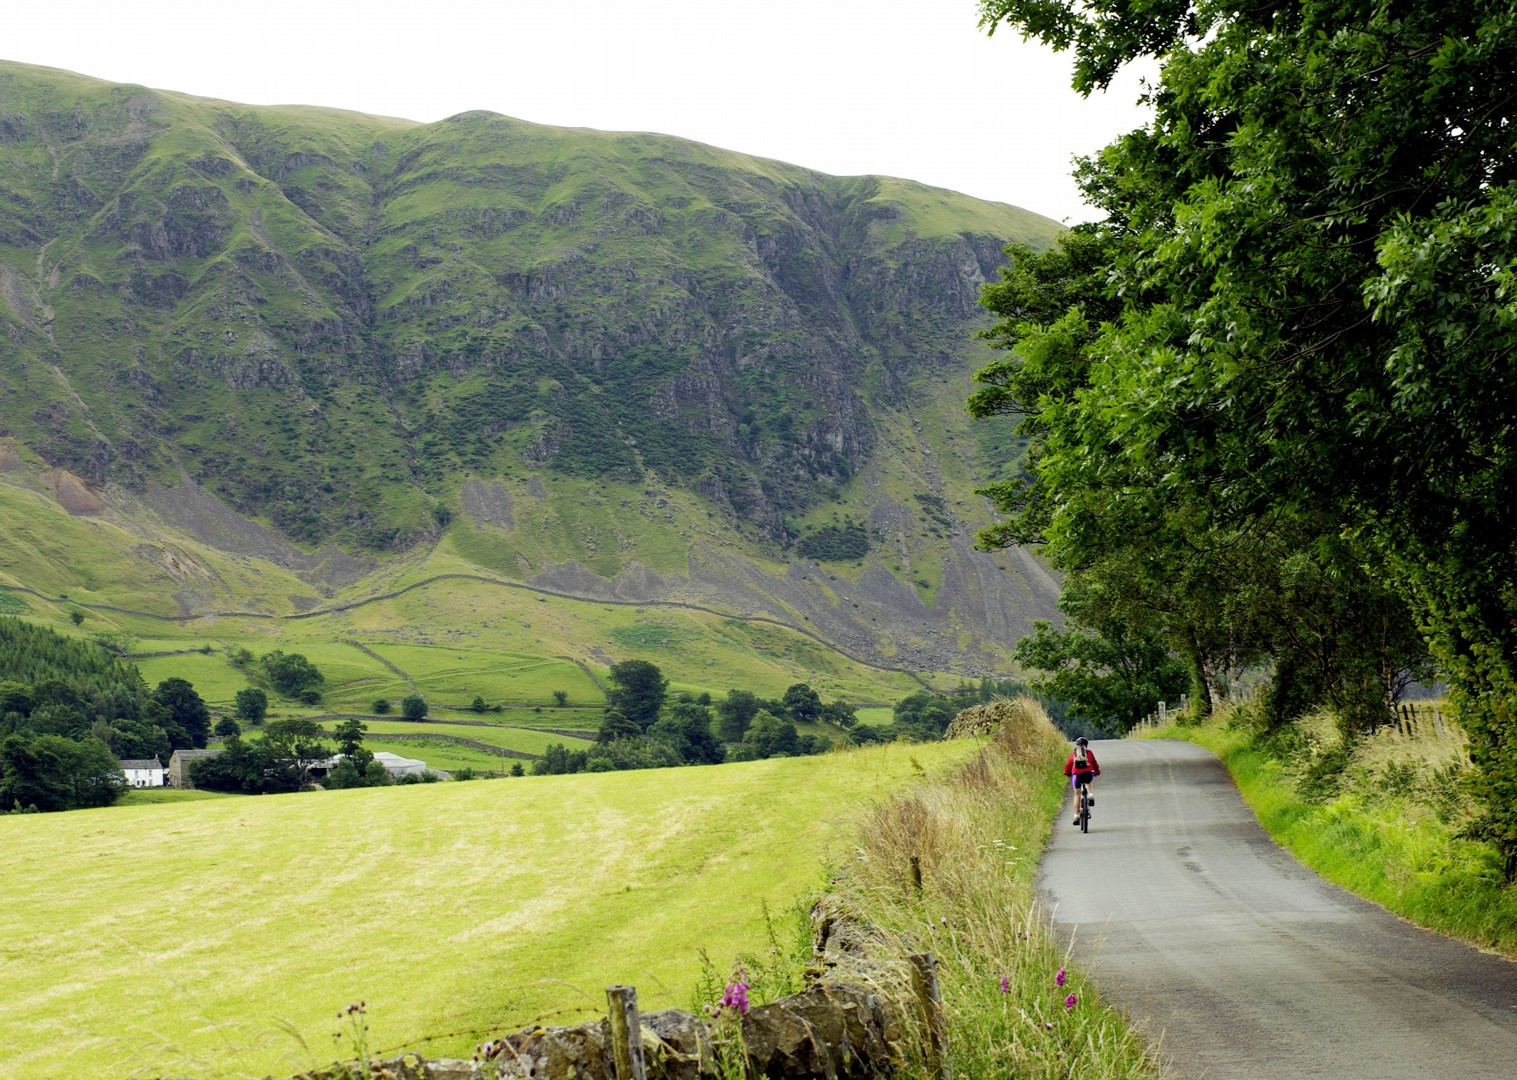 cycling-holiday-uk-guided.jpg - UK - Land's End to John O'Groats Explorer (22 days) - Guided Cycling Holiday - Road Cycling